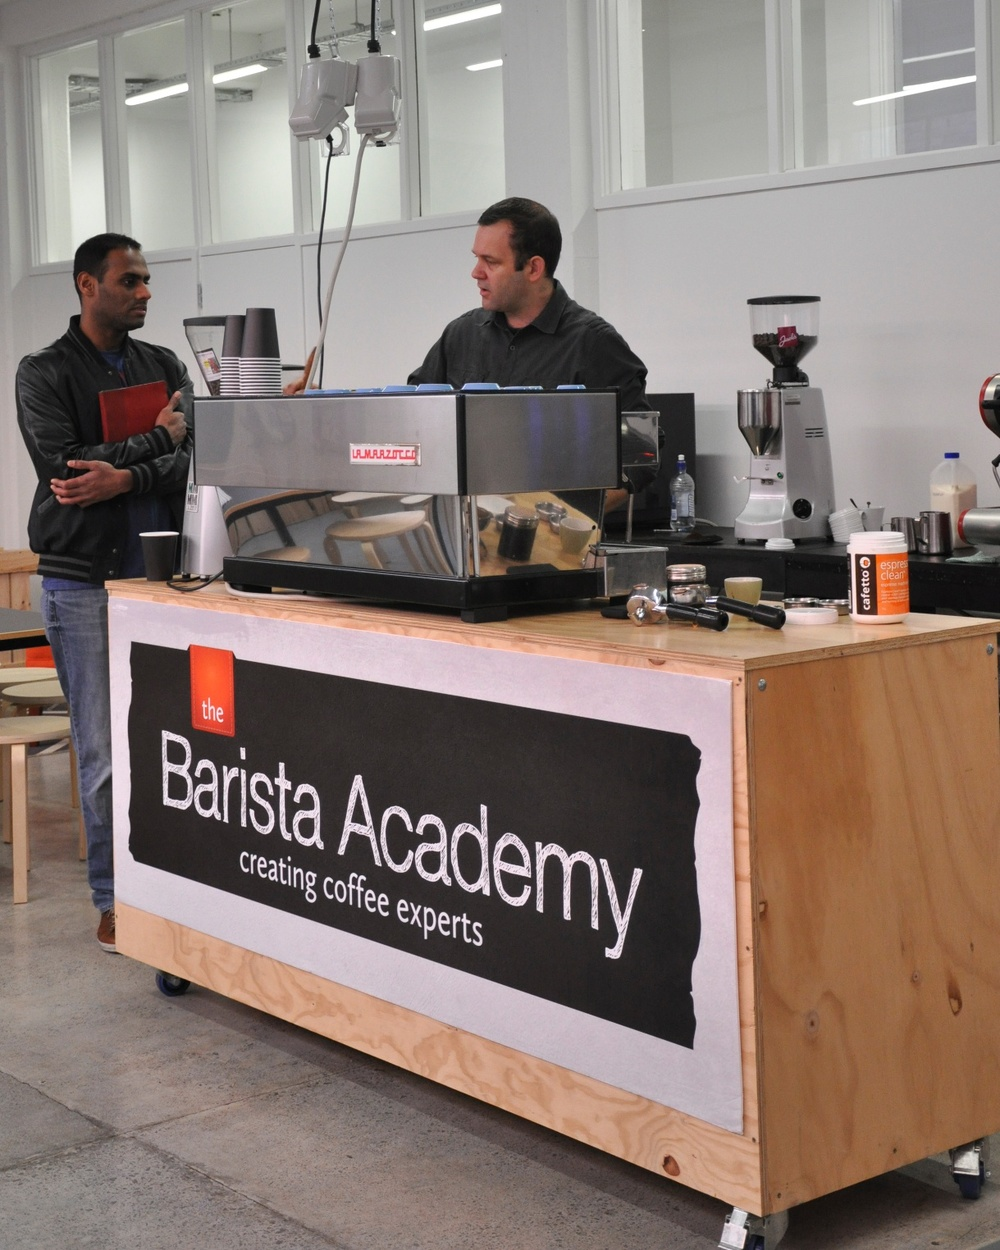 Creating coffee experts - hands on courses from The Barista Academy